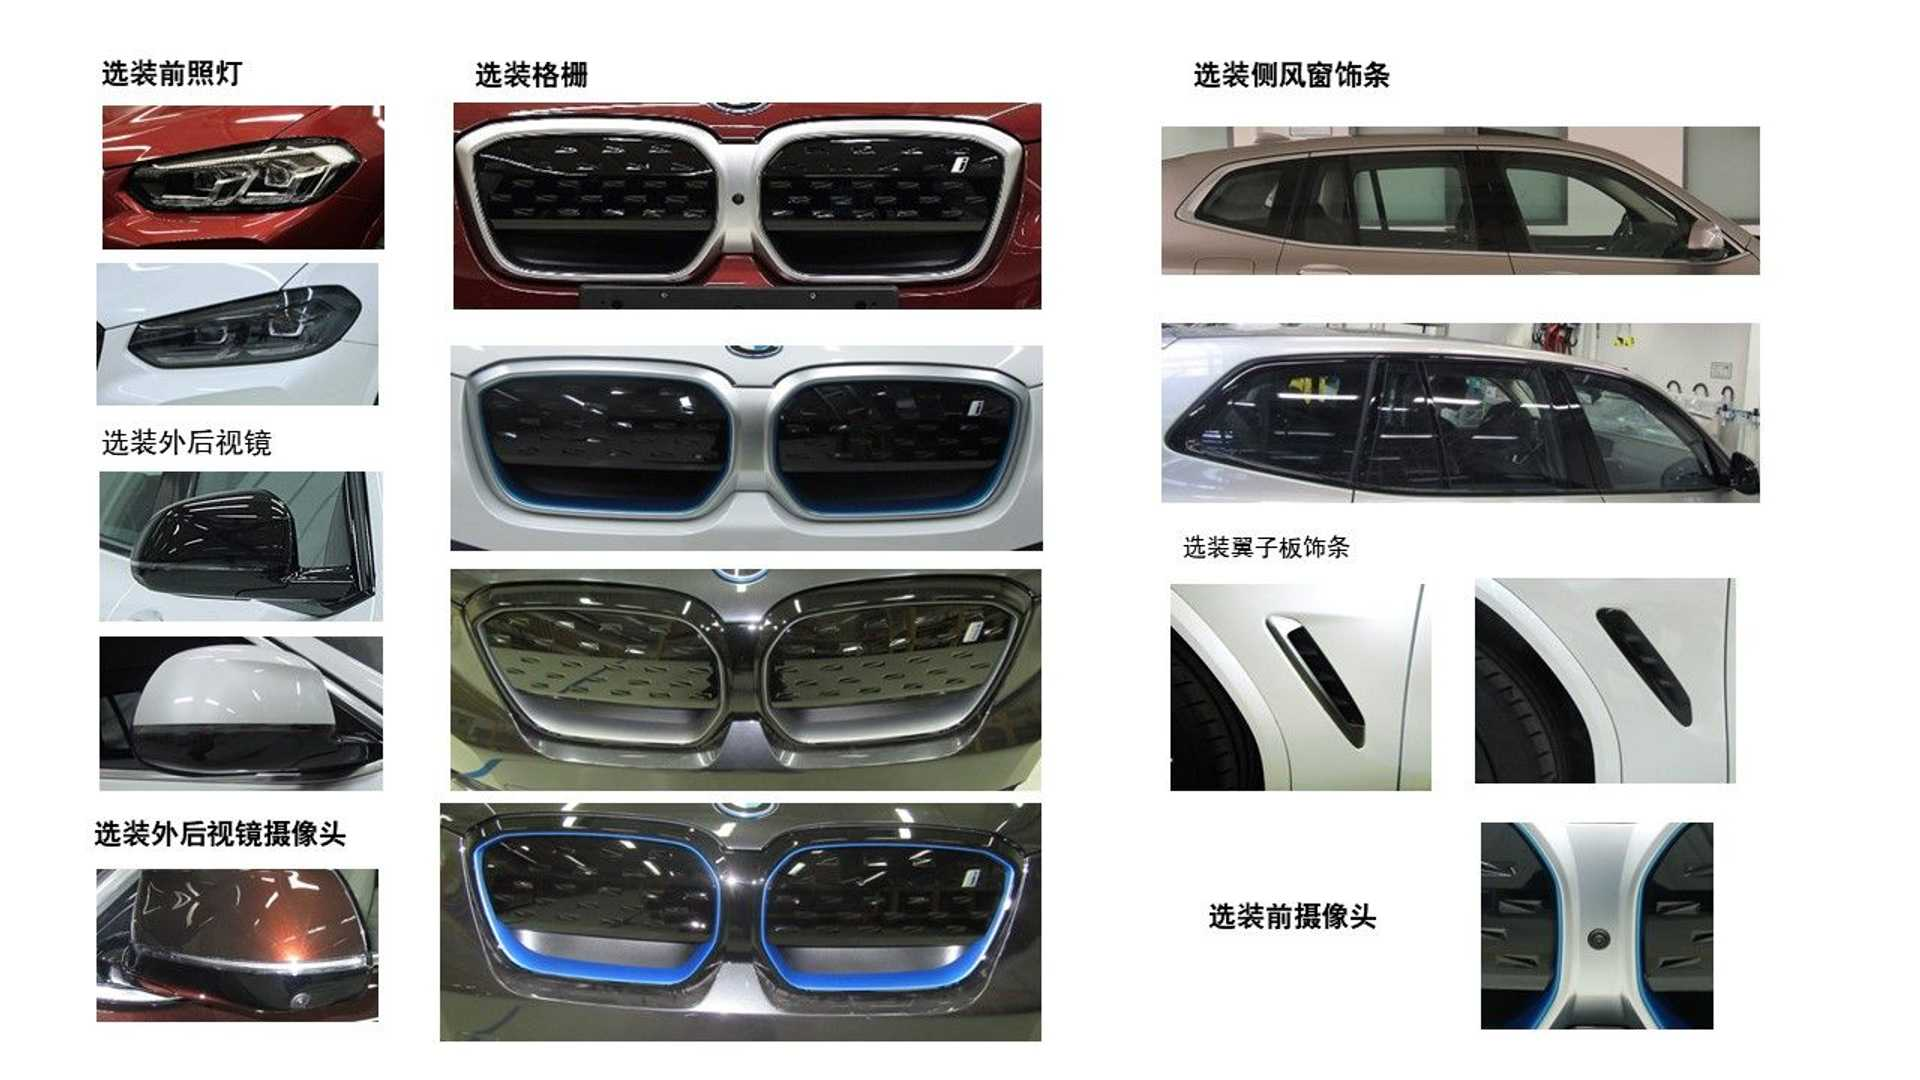 https://toquoc.mediacdn.vn/280518851207290880/2021/5/15/2022-bmw-ix3-facelift-homologated-in-china-2-1620993115027986193786-1621038831037-1621038831609840136731.jpg